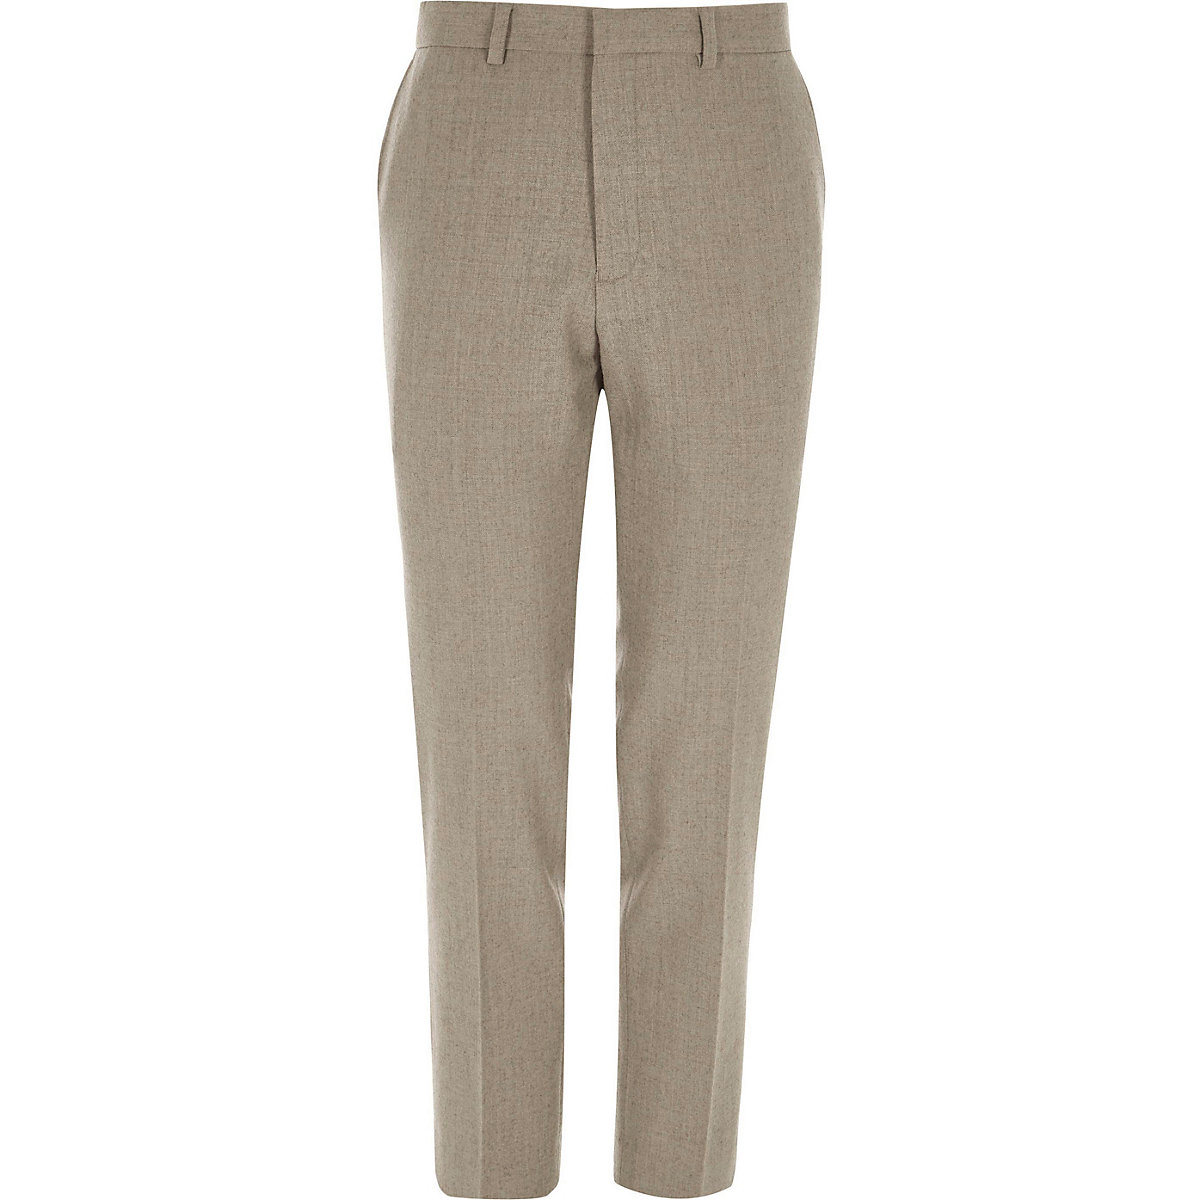 Stone skinny fit wool blend suit pants